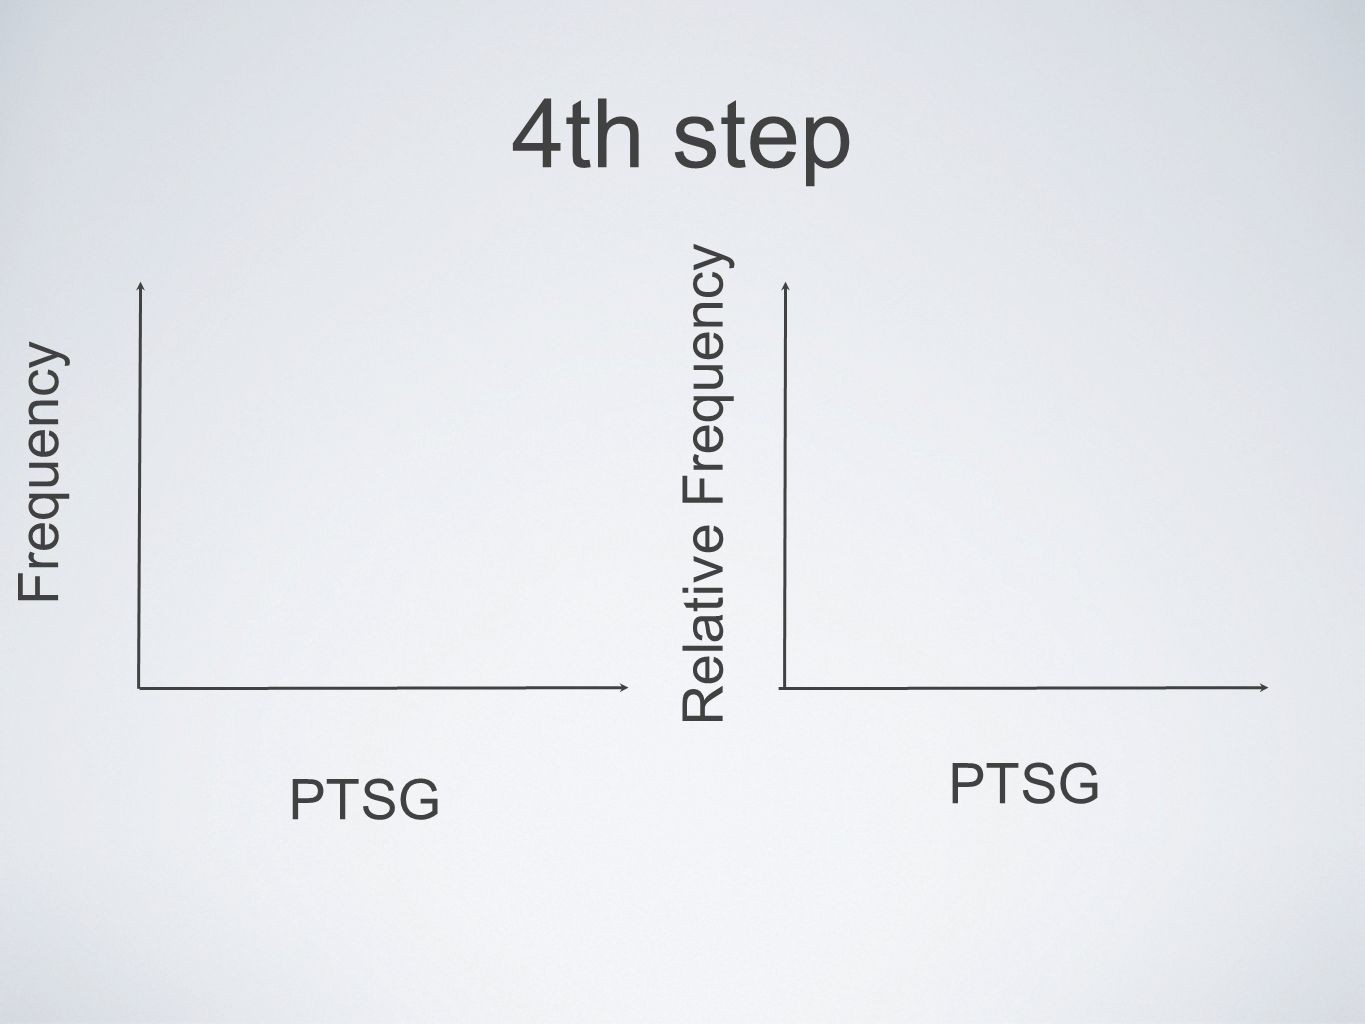 4th step PTSG Frequency PTSG Relative Frequency